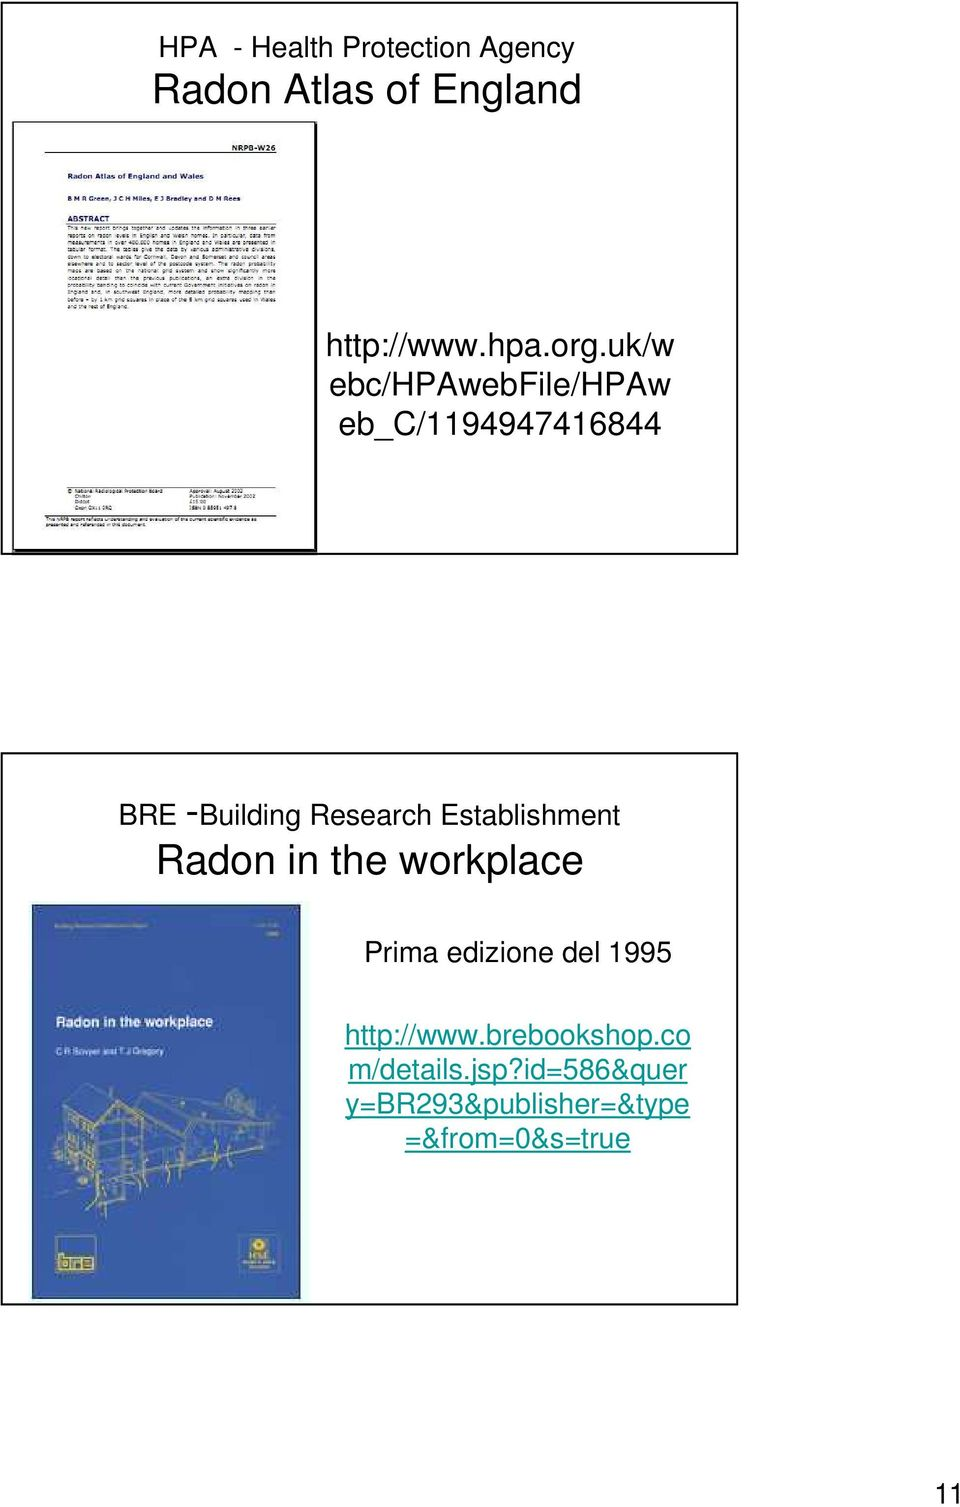 Establishment Radon in the workplace Prima edizione del 1995 http://www.